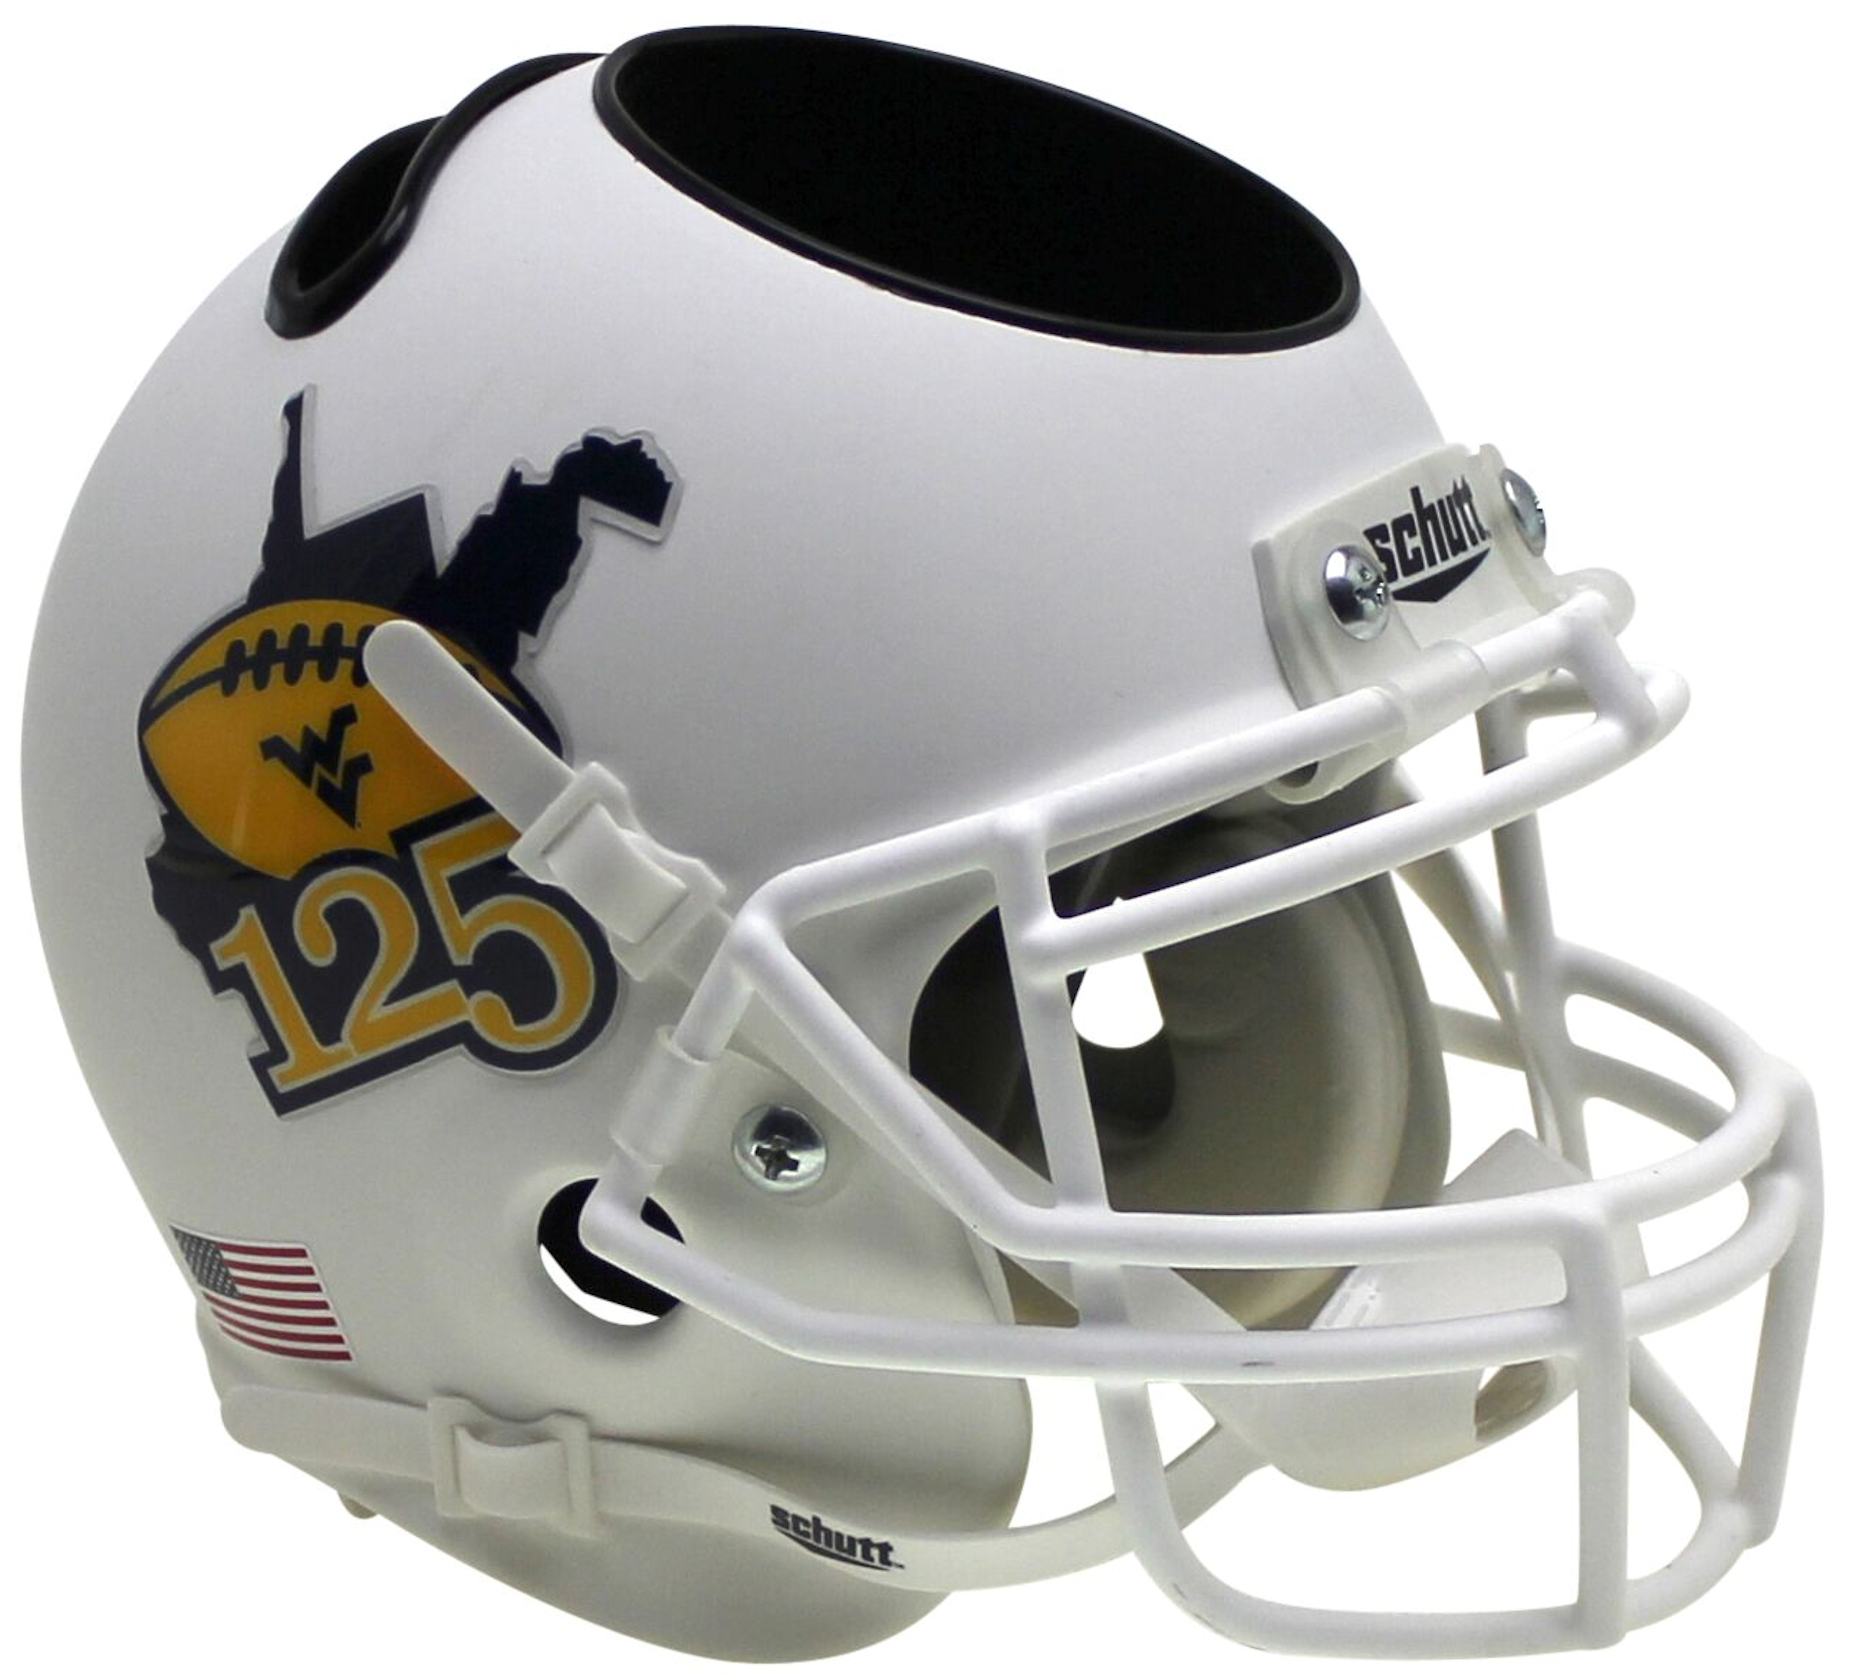 West Virginia Mountaineers Miniature Football Helmet Desk Caddy <B>Matte White 125</B>